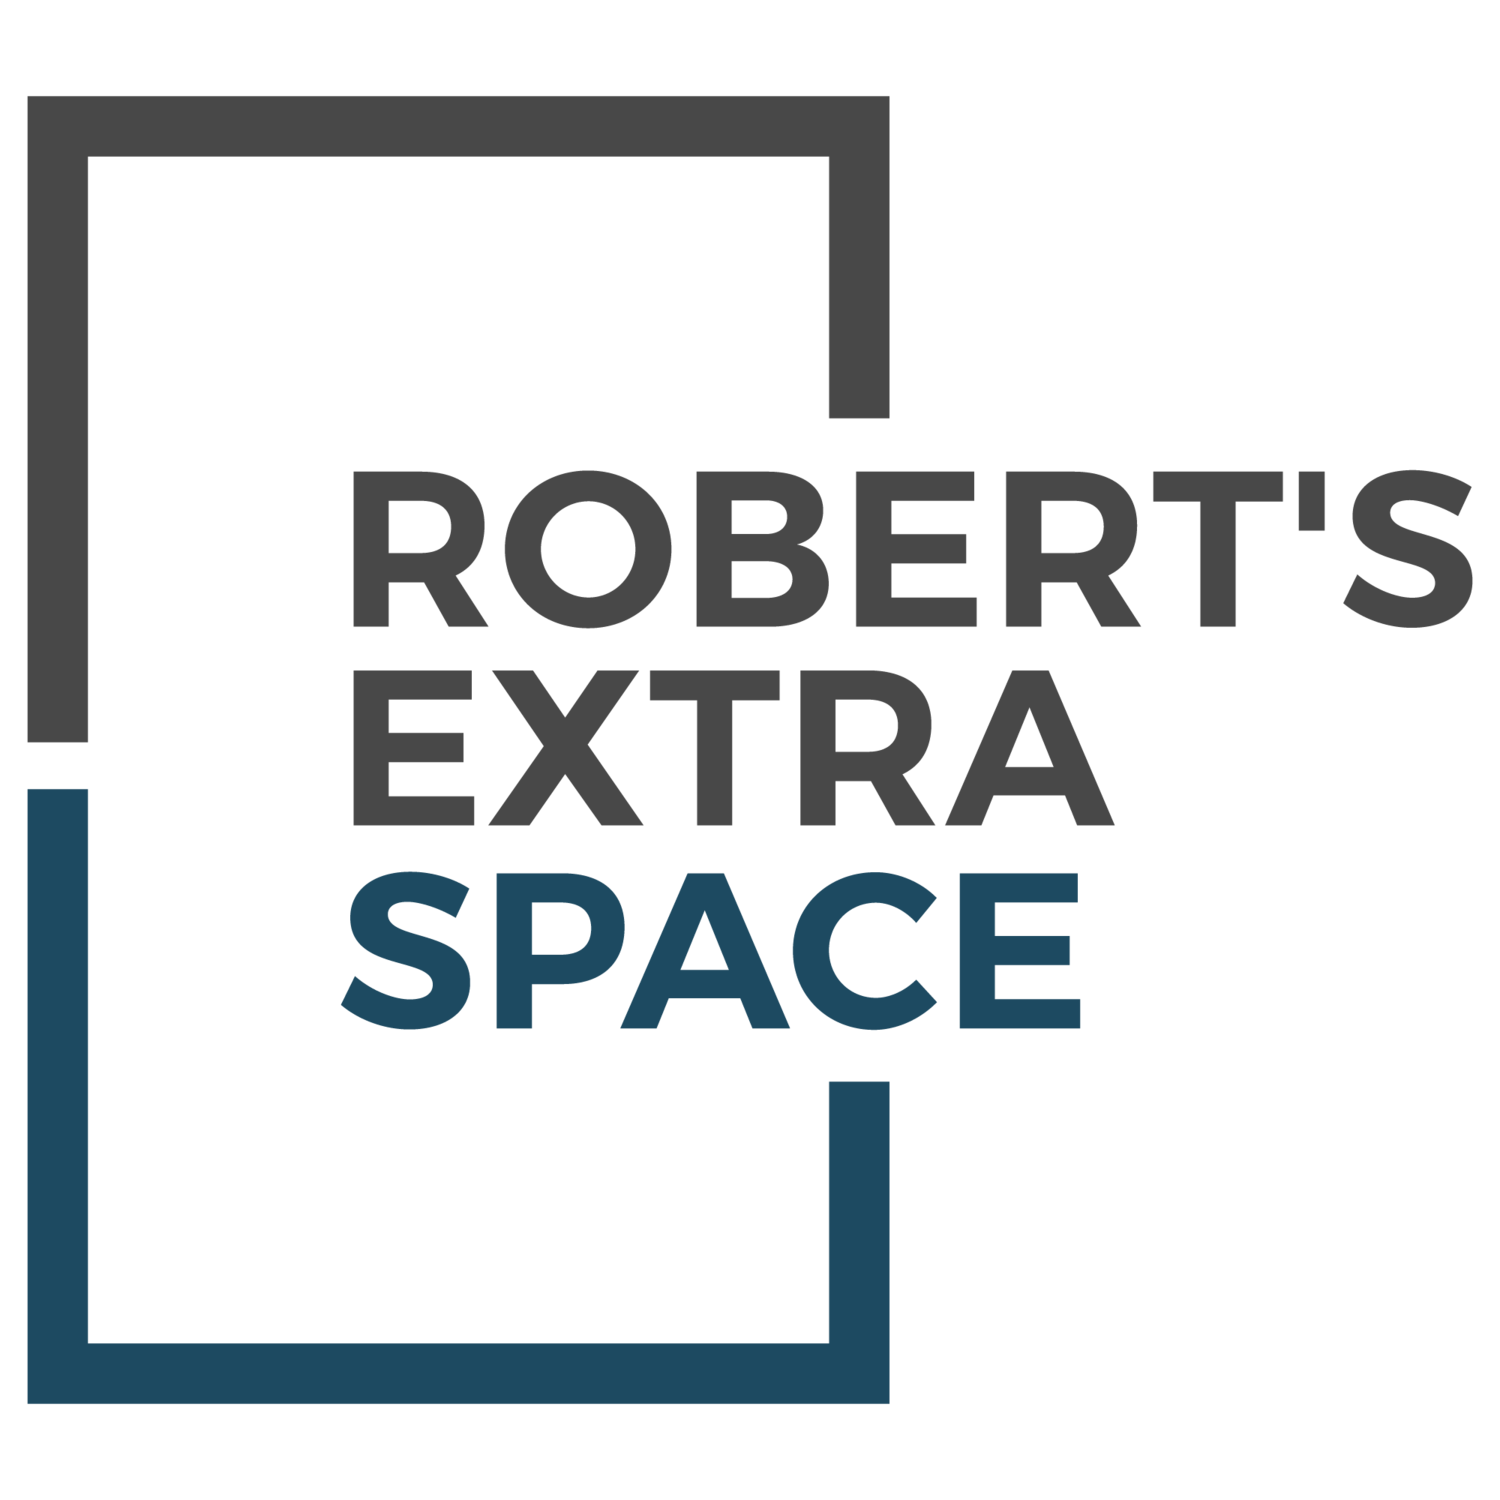 Robert's Extra Space LLC